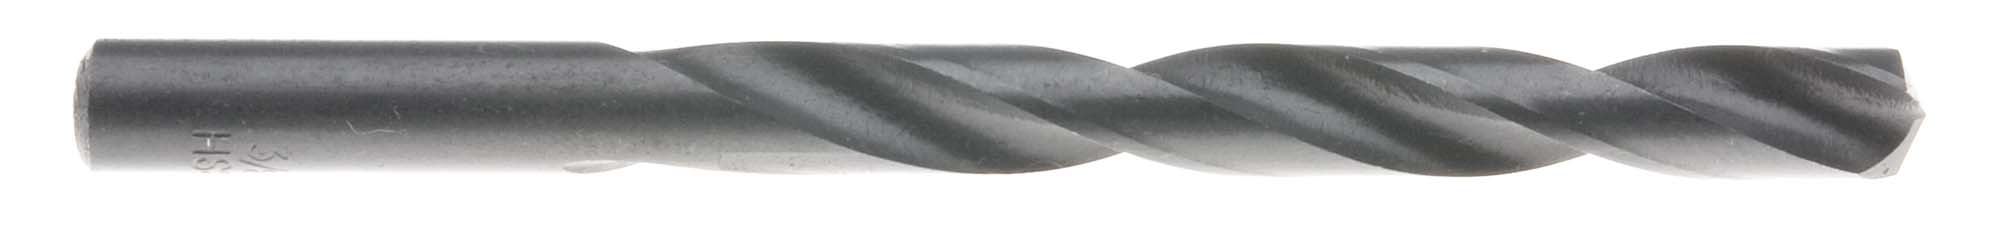 "#25 (.1495"") Heavy Duty Split Point Jobber Drill Bit, High Speed Steel"